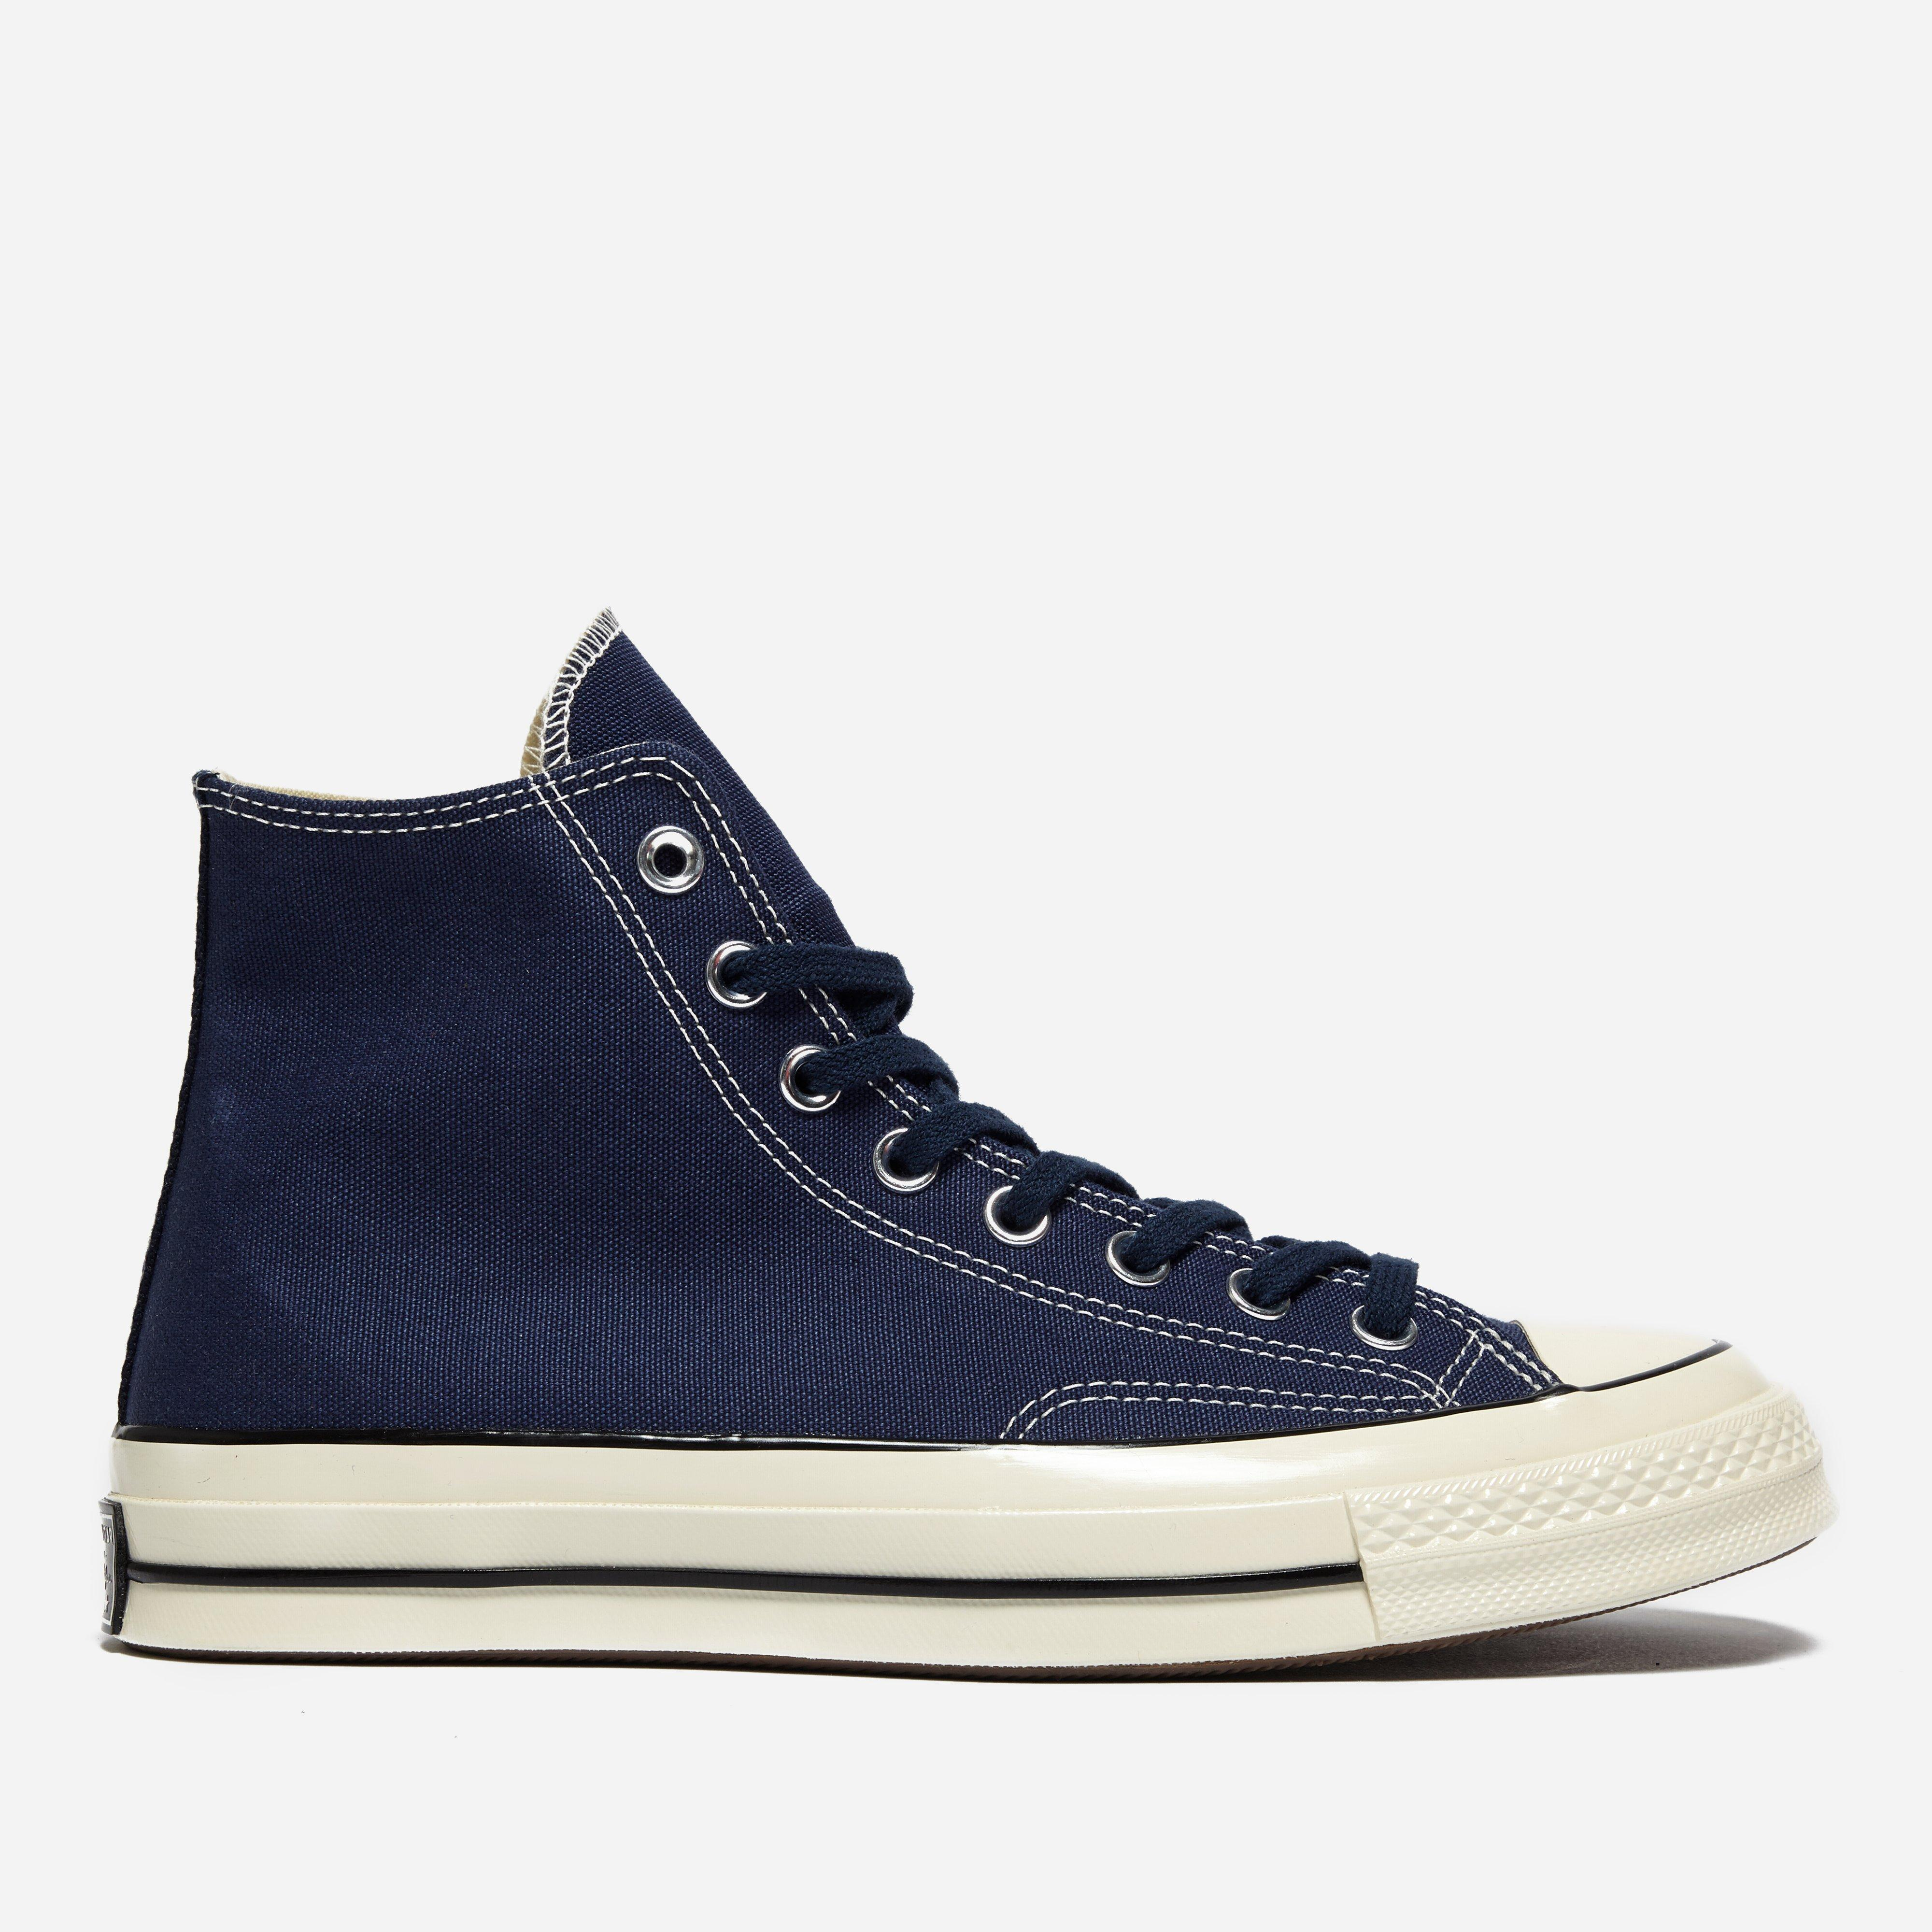 How Long Are Chuck Taylor Shoe Laces